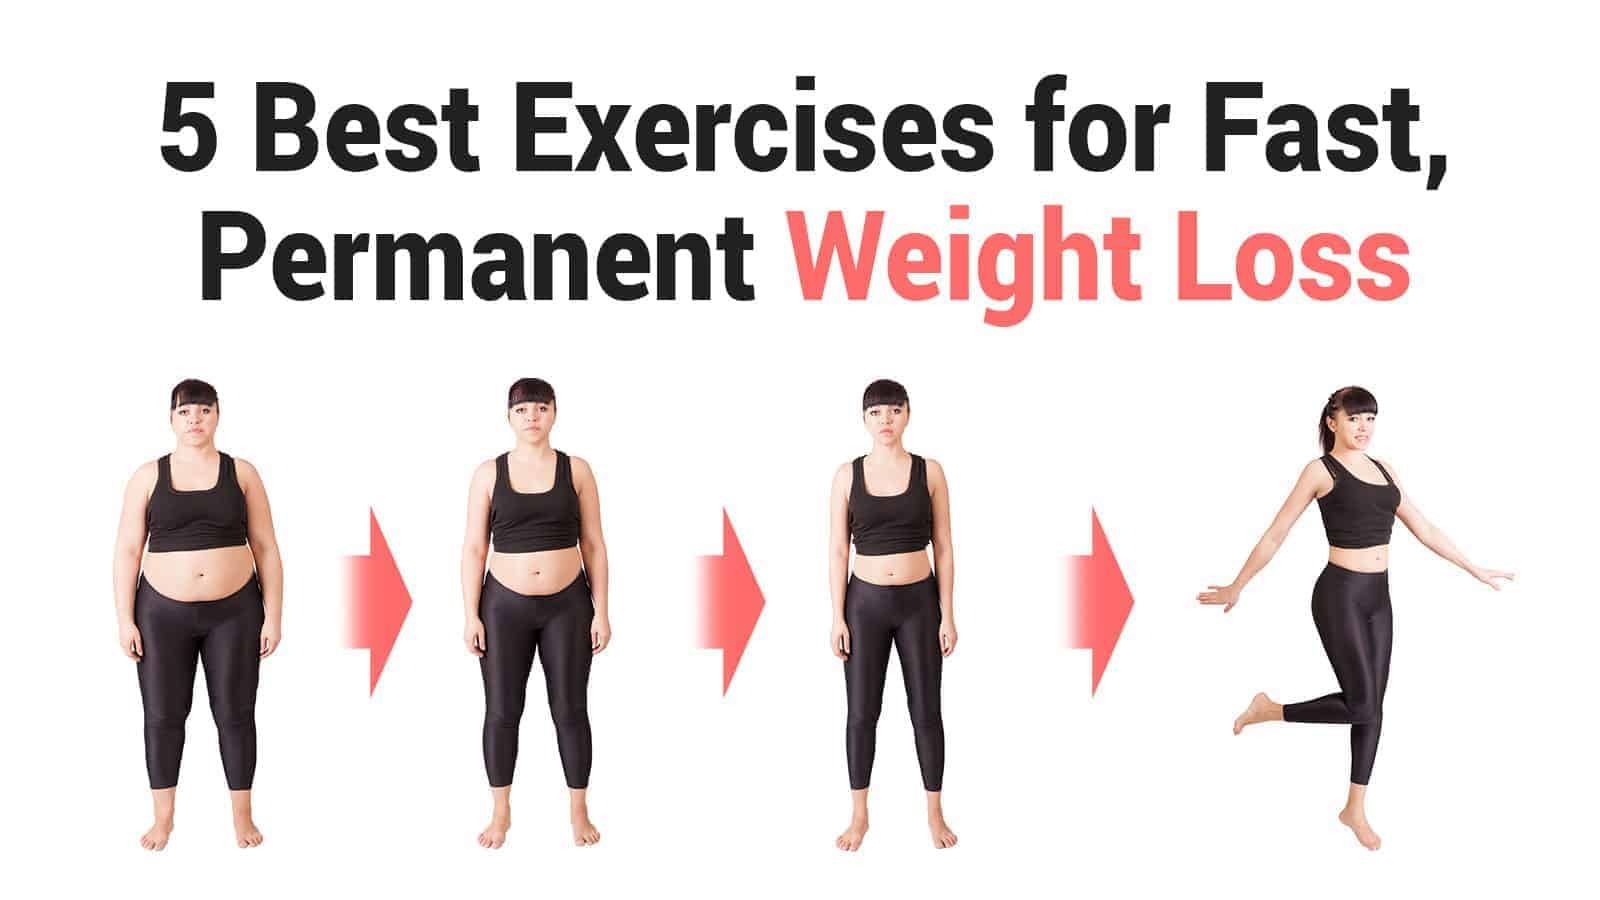 5 Best Exercises For Fast Permanent Weight Loss